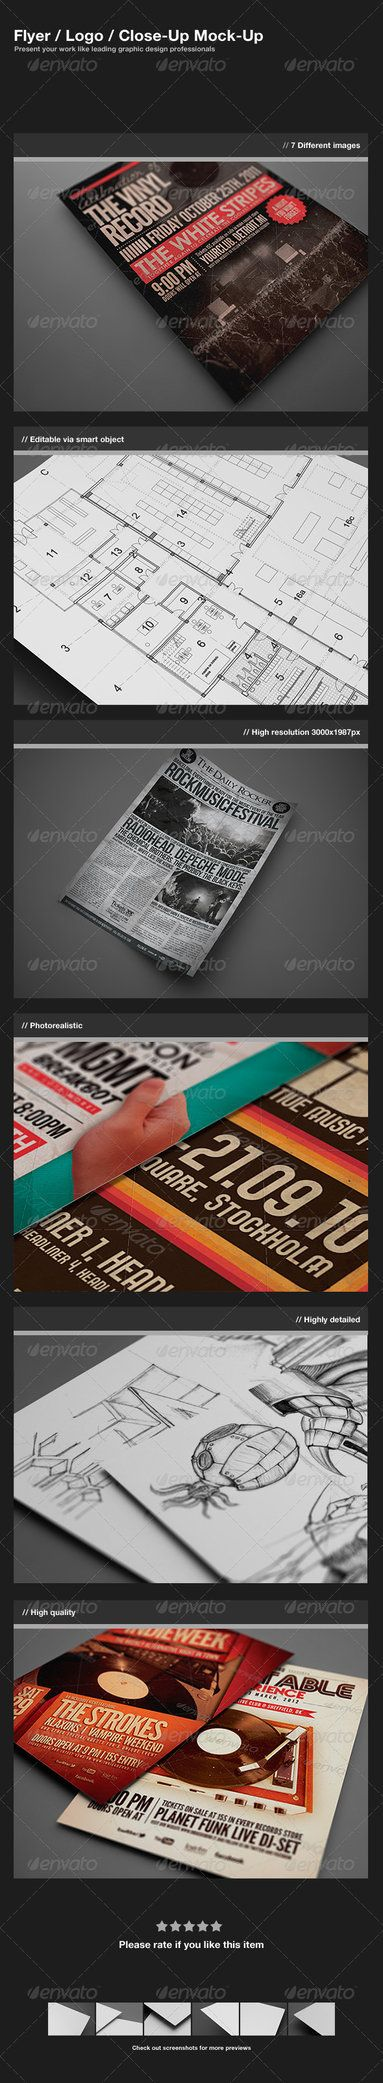 6 poster design photo mockups 57079 - Buy Flyer Logo Close Up Mock Up By Zeisla On Graphicriver Features 7 Different Images Editable Via Smart Object Resolution Paper Size Separa